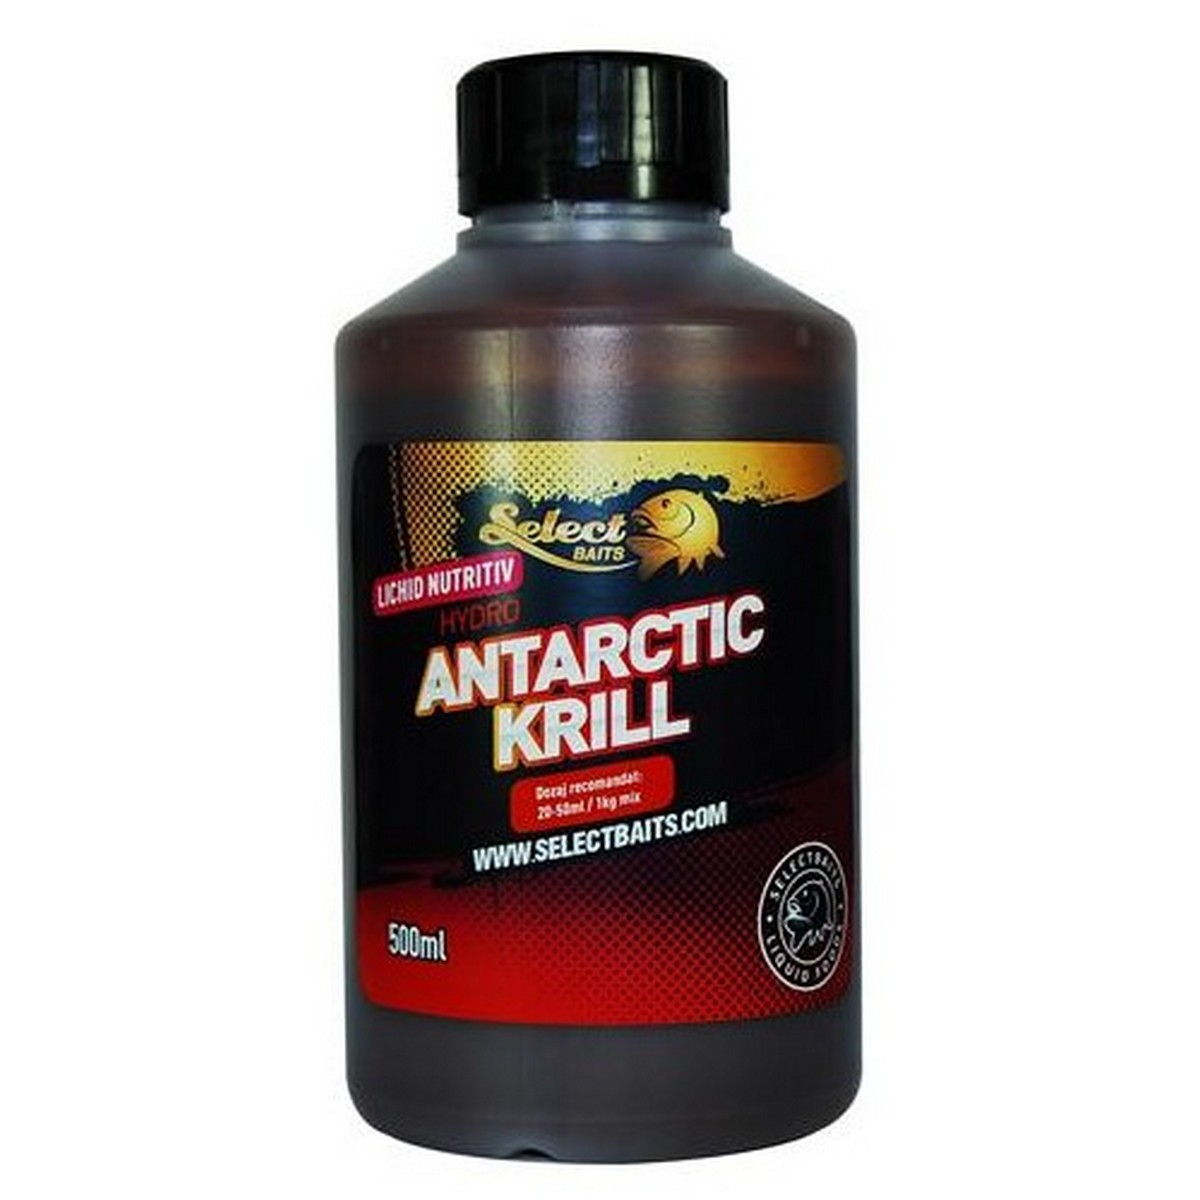 Хранителна течност Hydro Antarctic Krill 500ml Select Baits